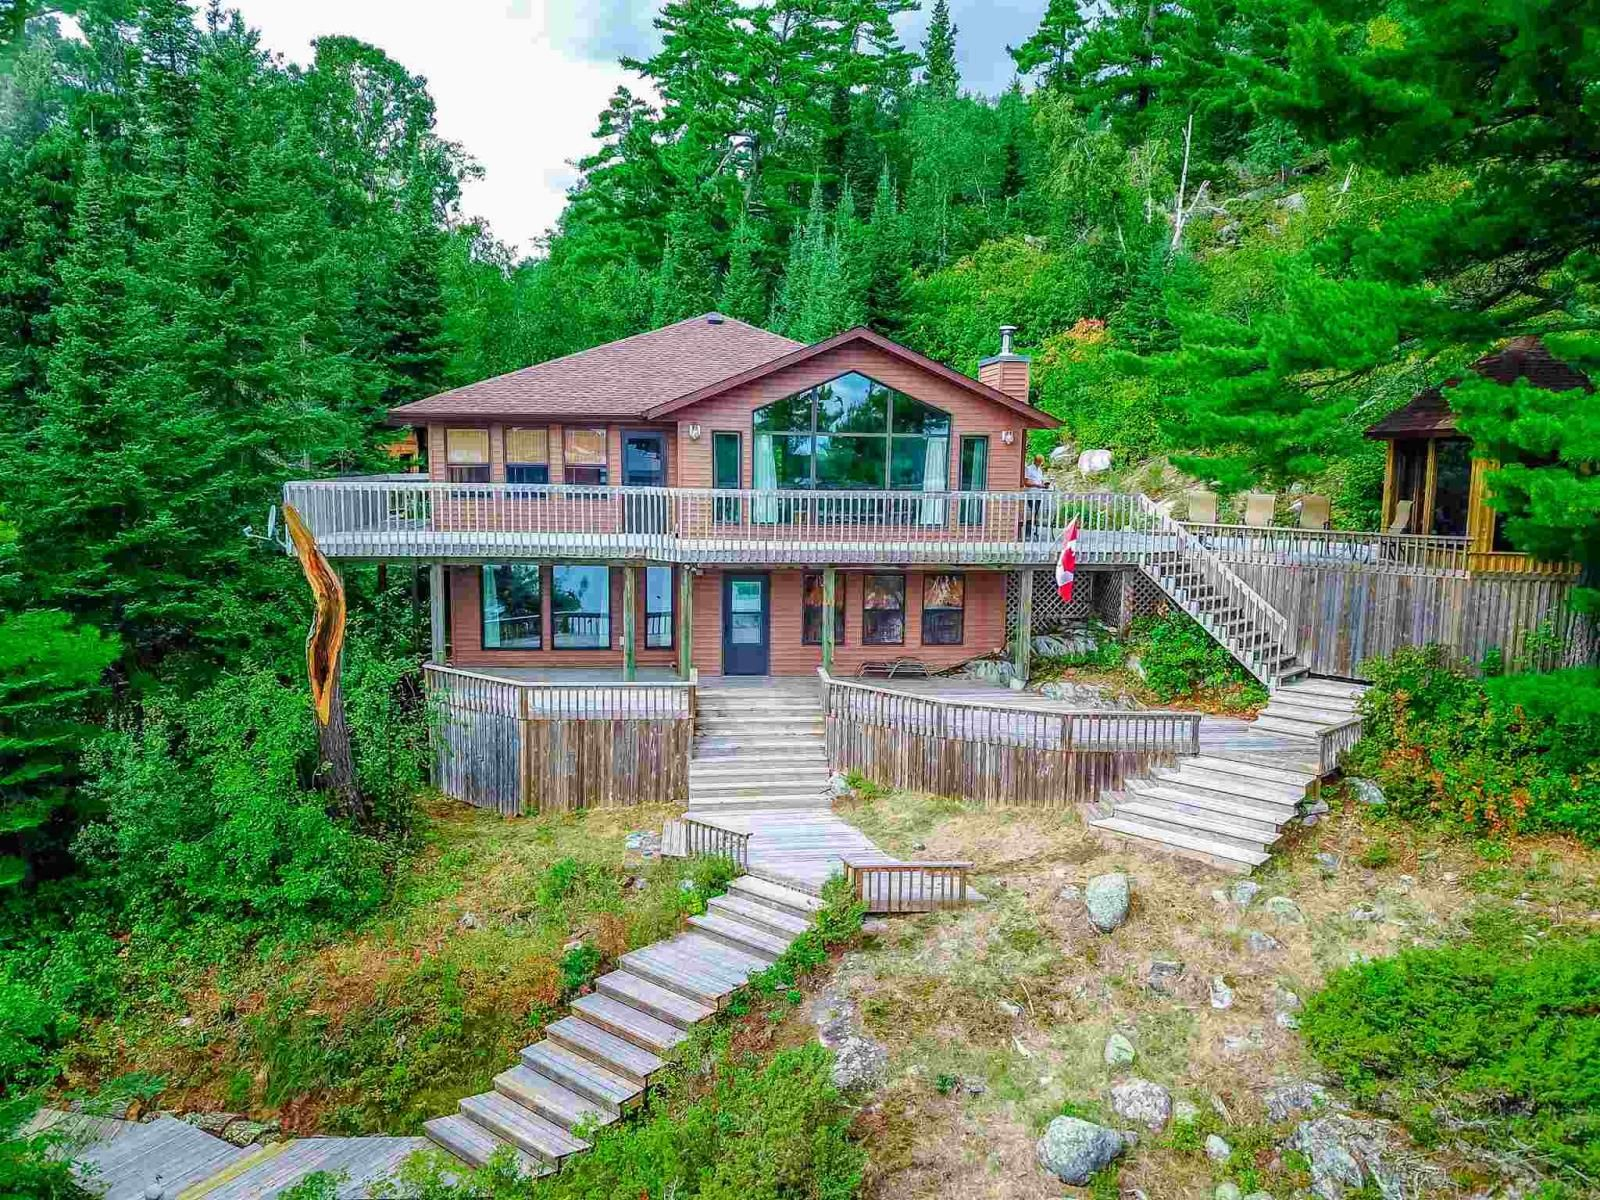 Main Photo: 48 LILY PAD BAY in KENORA: Recreational for sale : MLS®# TB202607